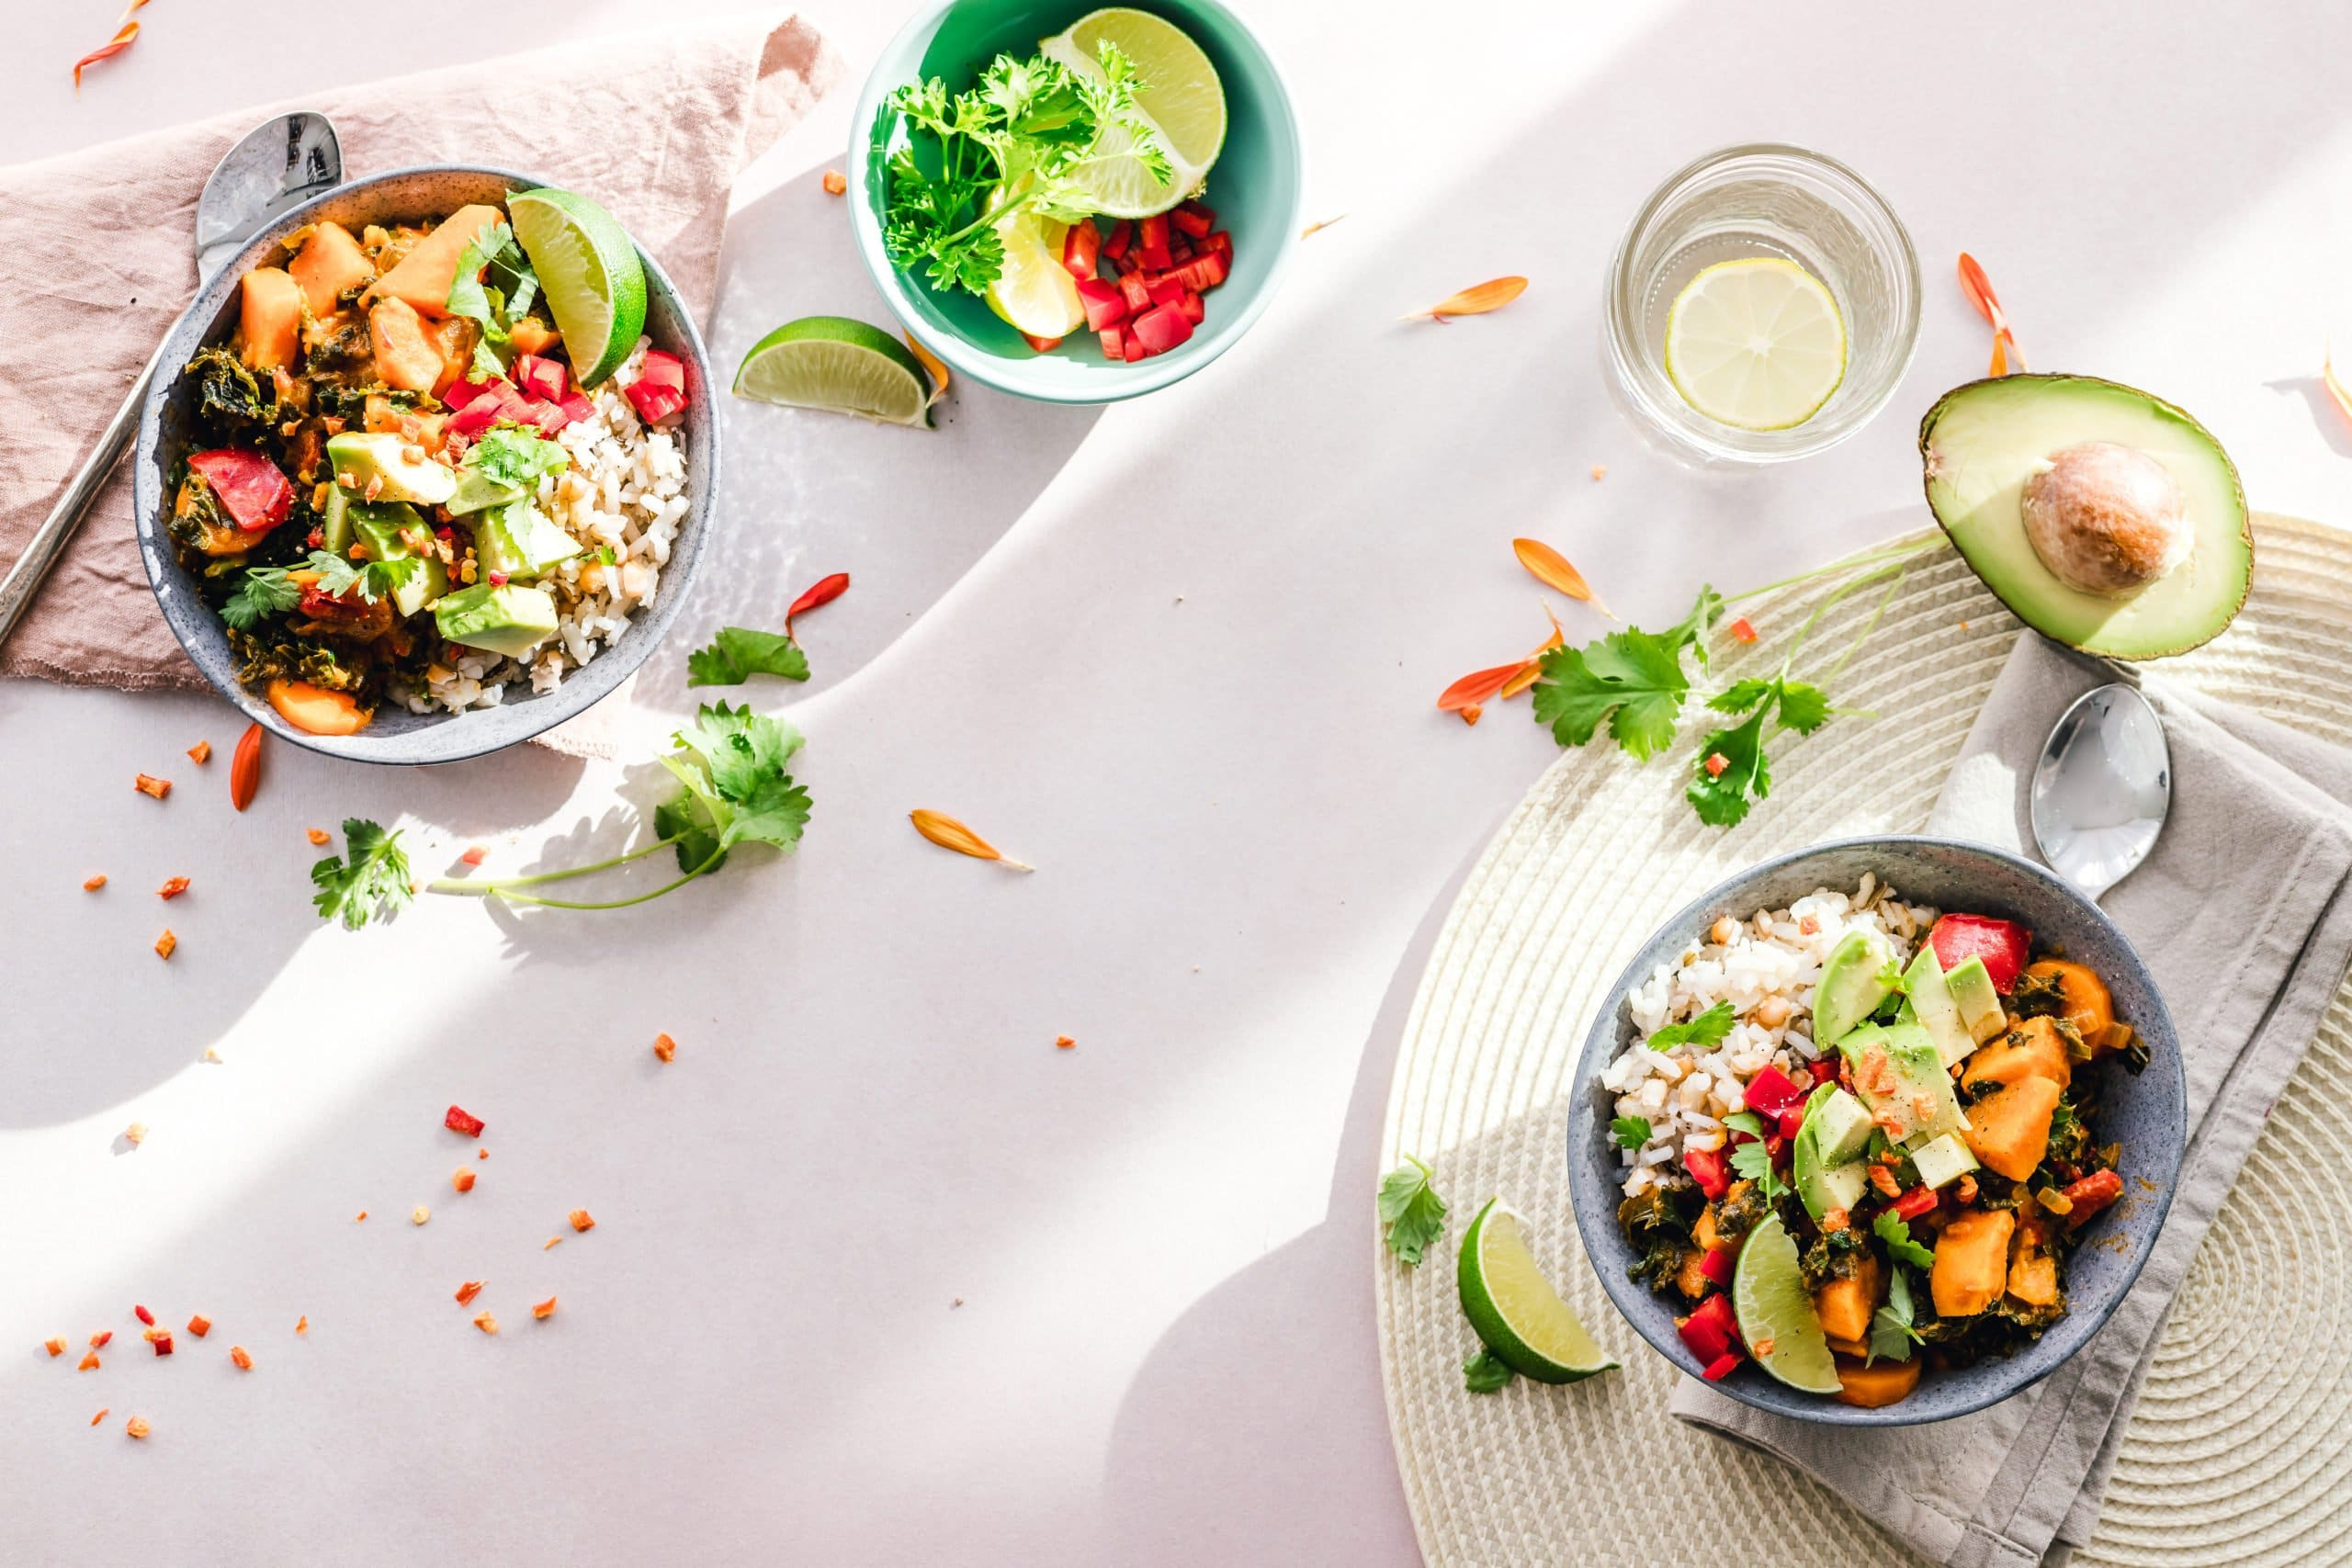 Canva Photo of Vegetable Salad in Bowls scaled